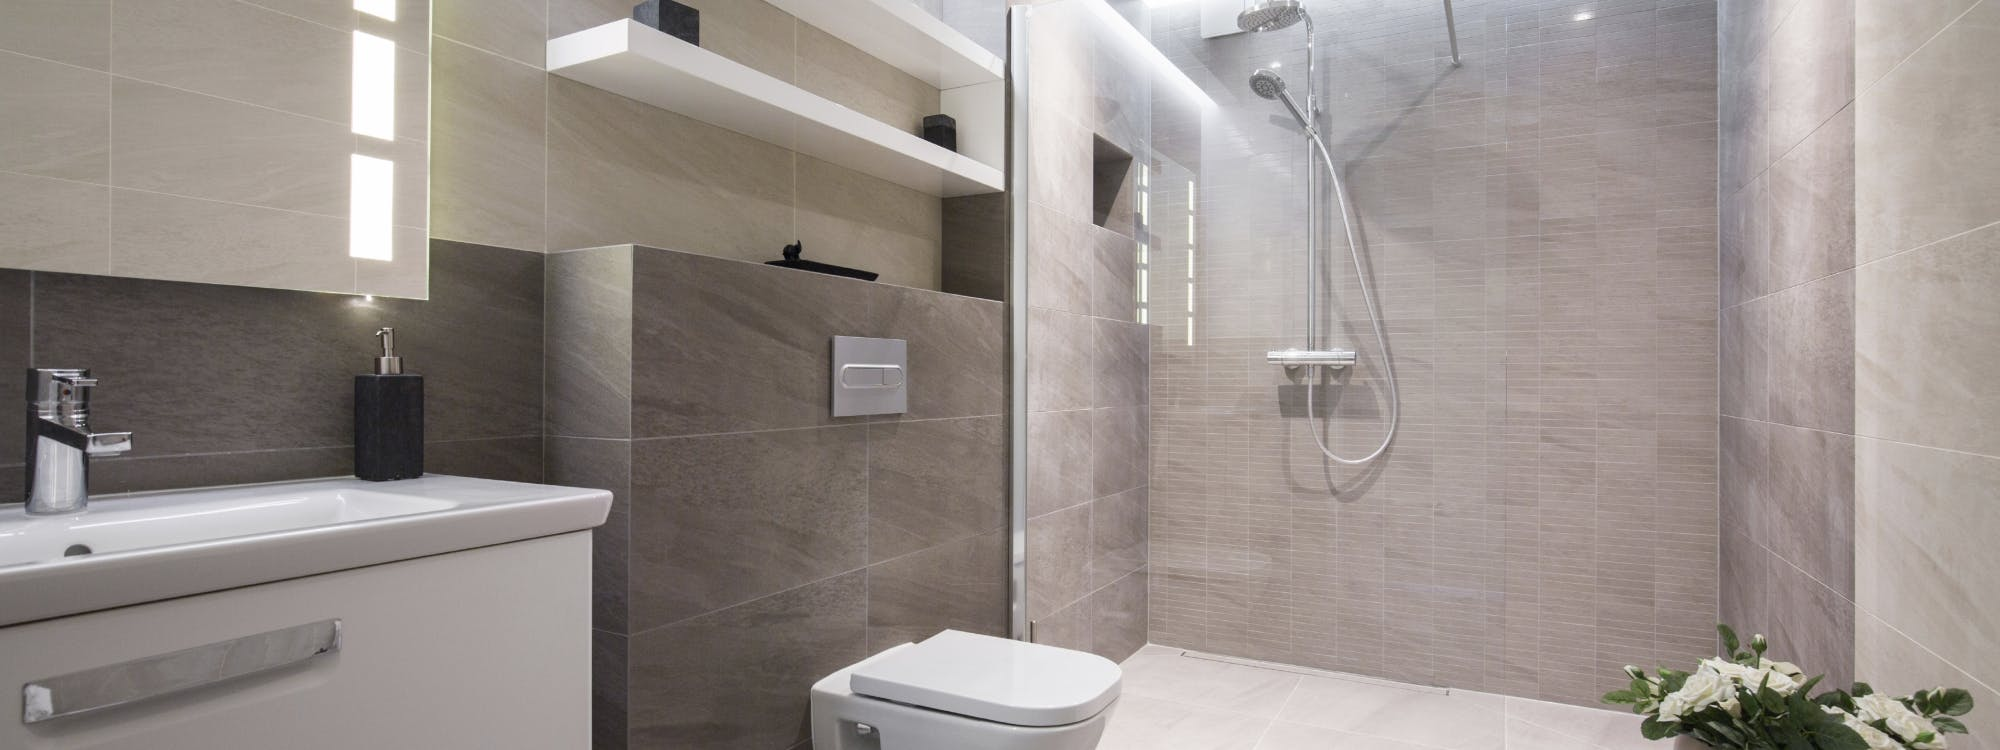 dream shower rooms - designed, supplied & installed